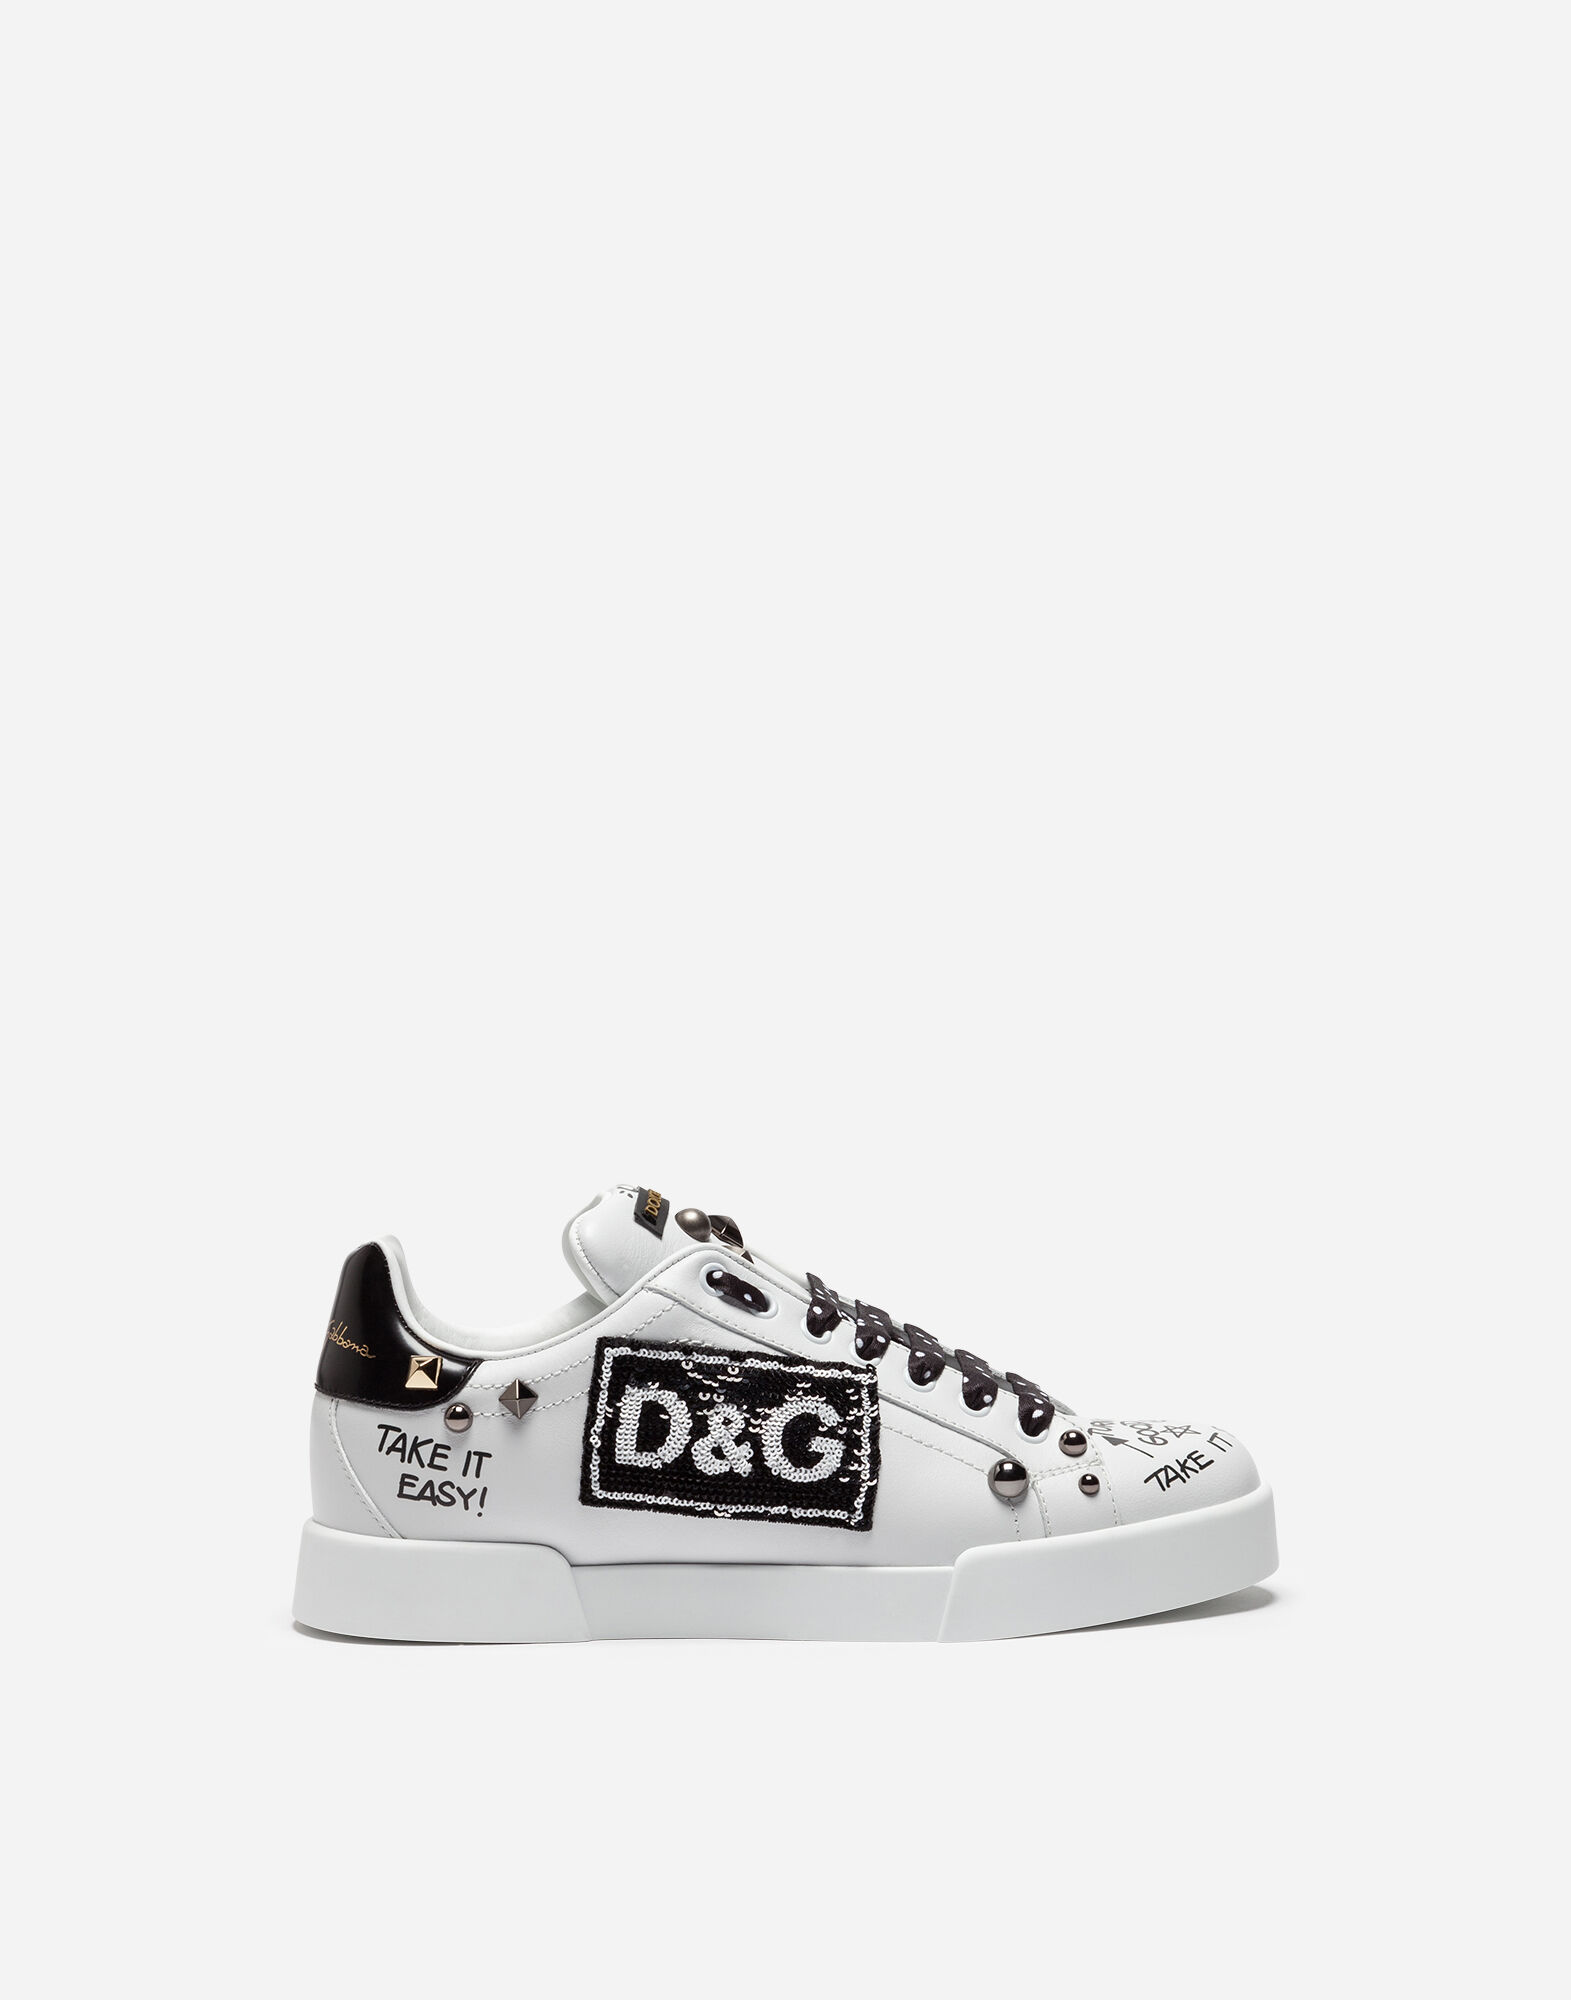 2014 new online Dolce & Gabbana Portofino embroidered sneakers outlet websites discount pictures Pawd1L